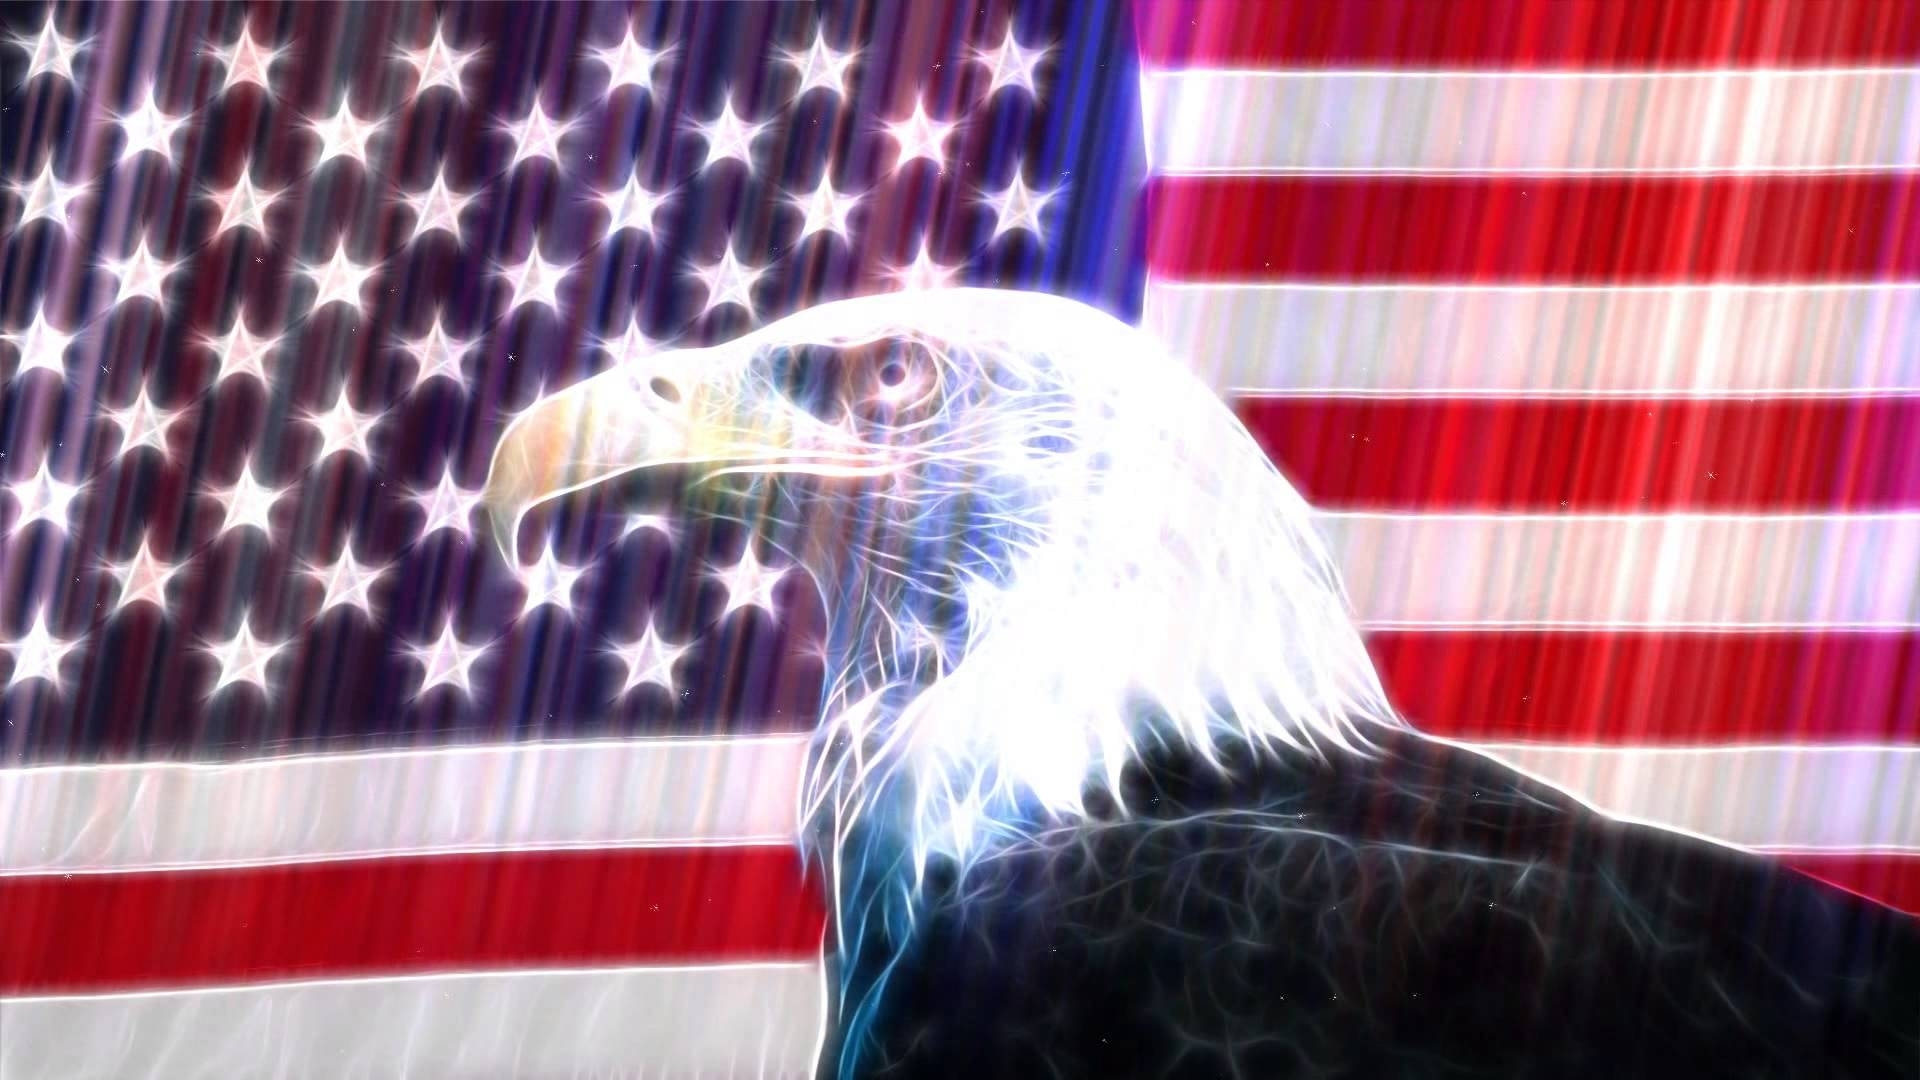 american flag animated wallpaper http://www.desktopanimated